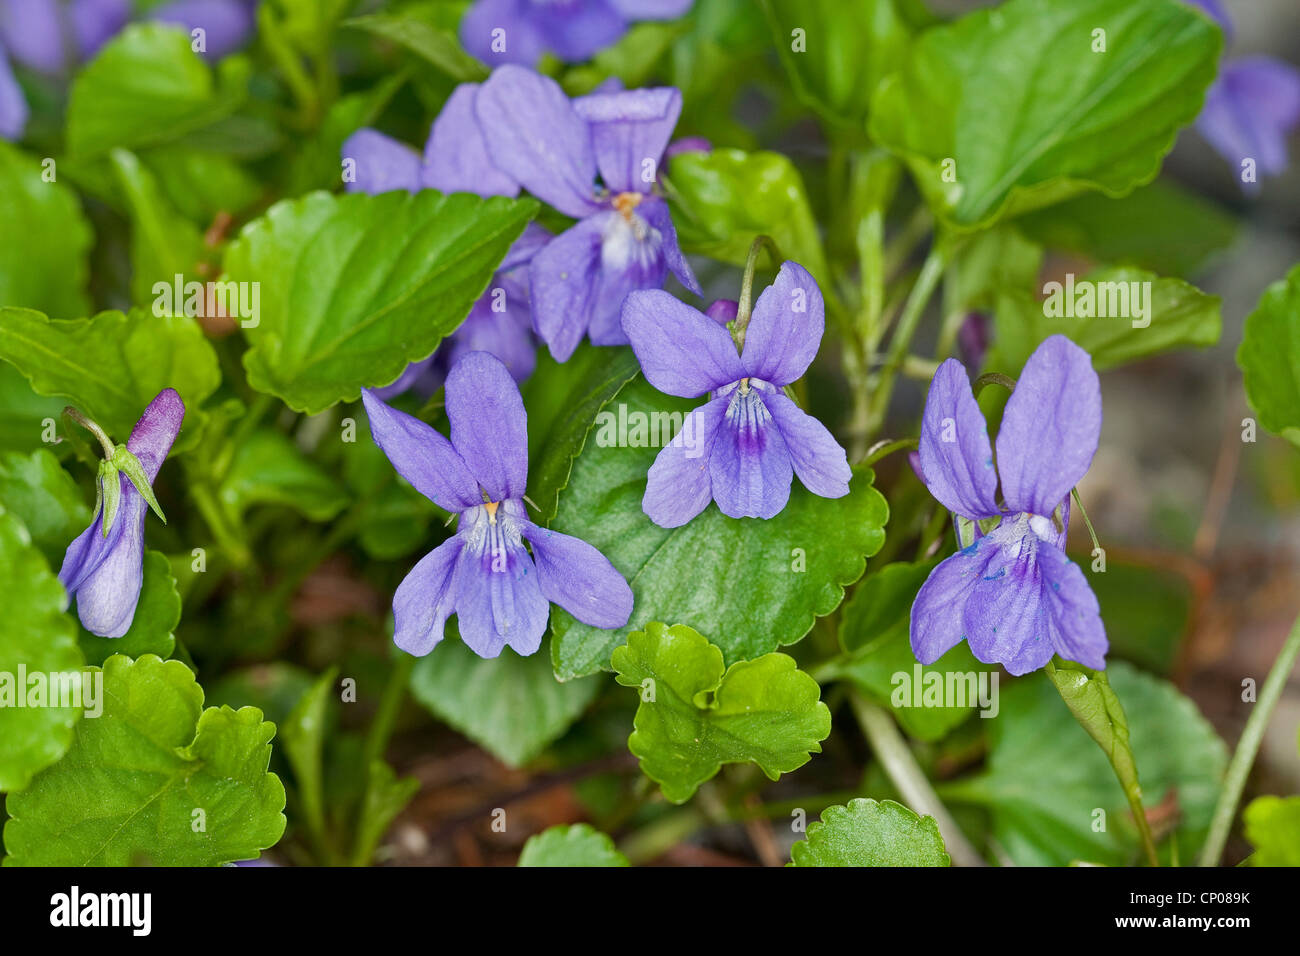 early dog-violet (Viola reichenbachiana), blooming, Germany - Stock Image